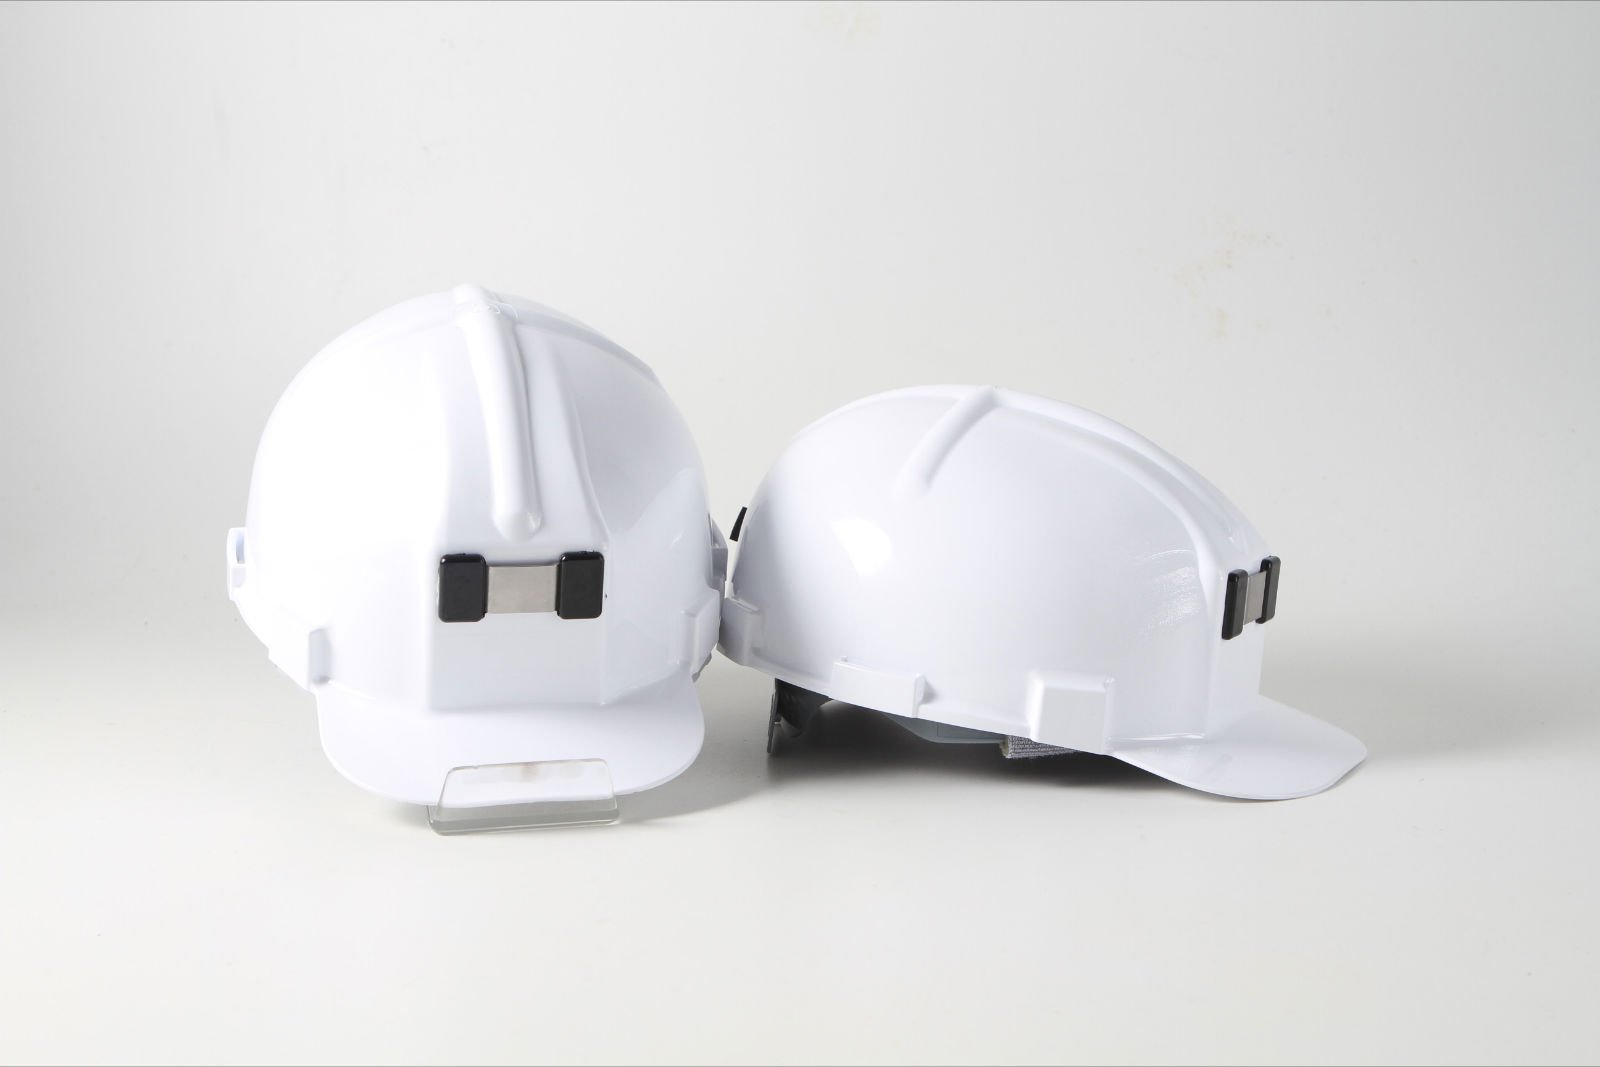 Low Pro Hard Hat, White by Low Pro Inc. (Image #1)